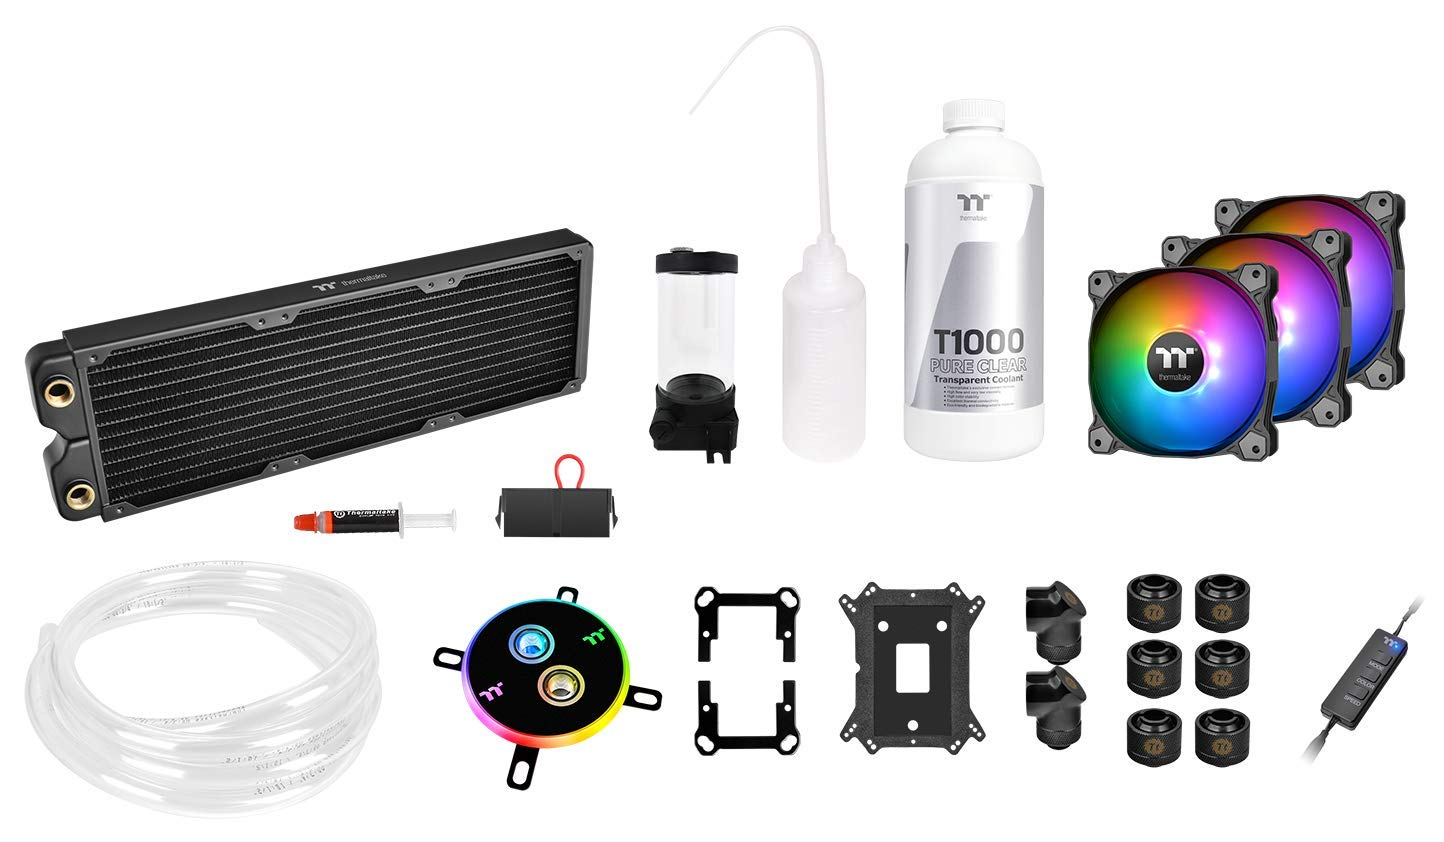 Thermaltake Pacific C360 Ddc Res/Pump 5V Motherboard Sync Copper Radiator Soft Tube Water Cooling Kit CL-W253-CU12SW-A